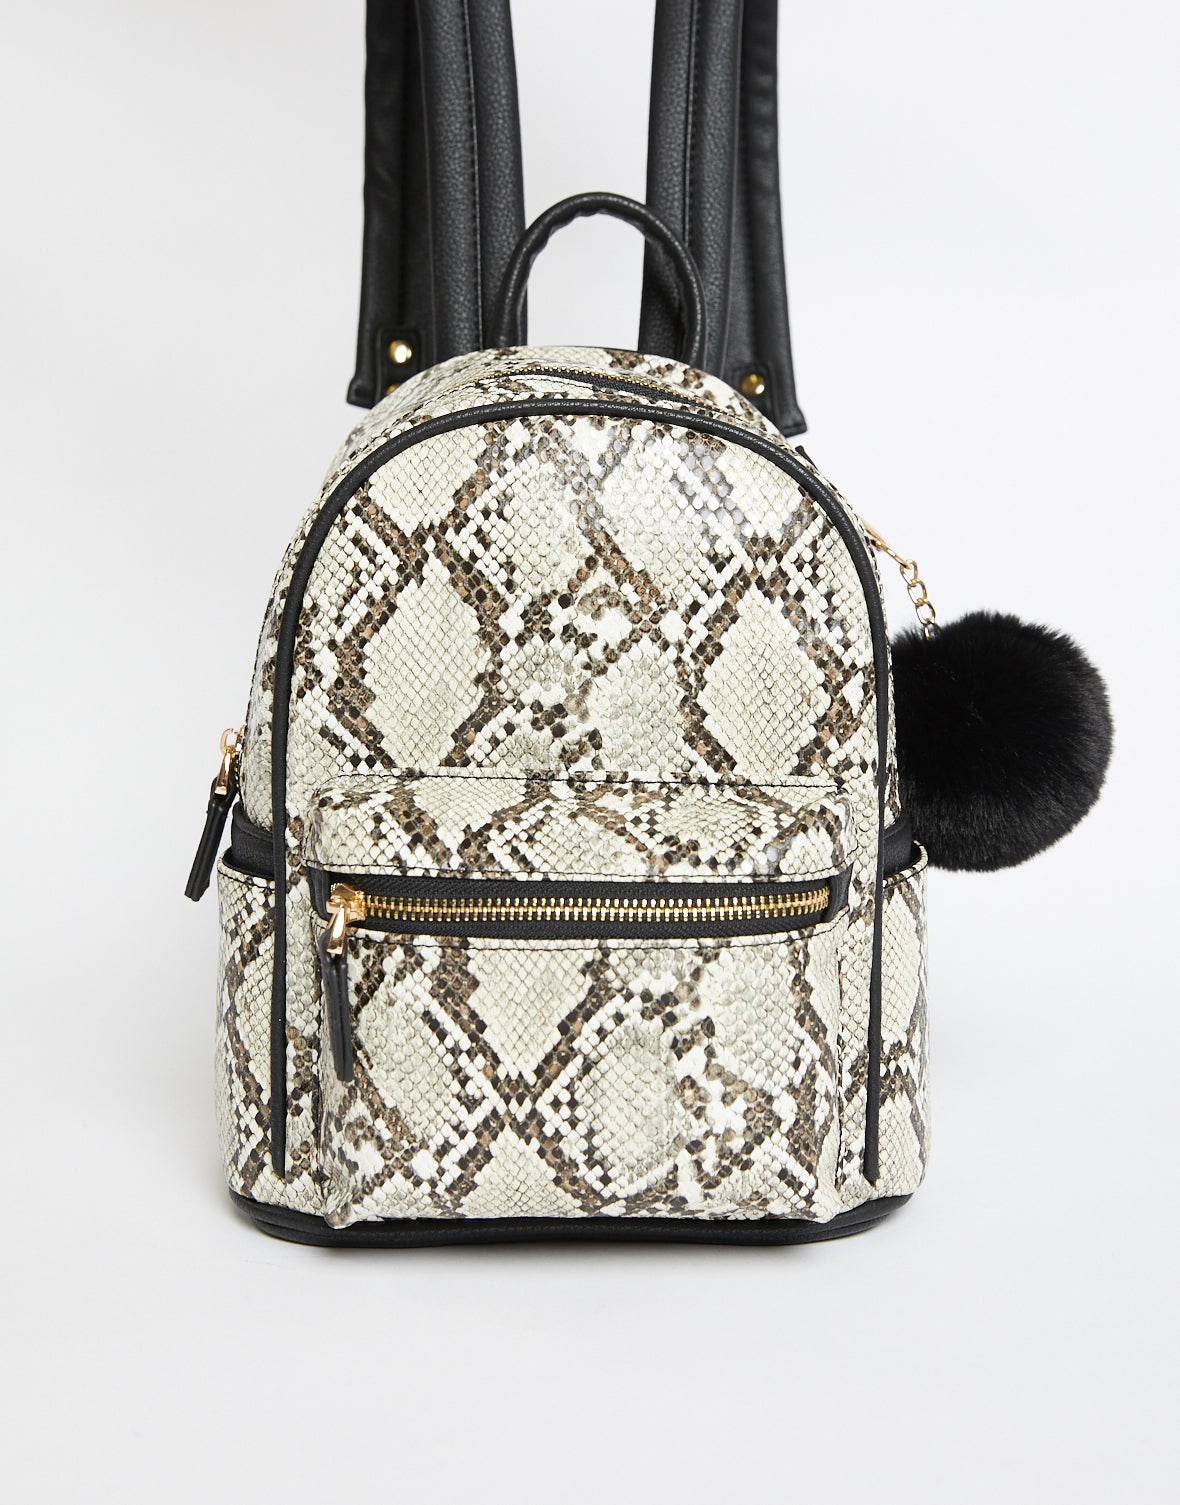 What The Faux Snakeskin Mini Backpack